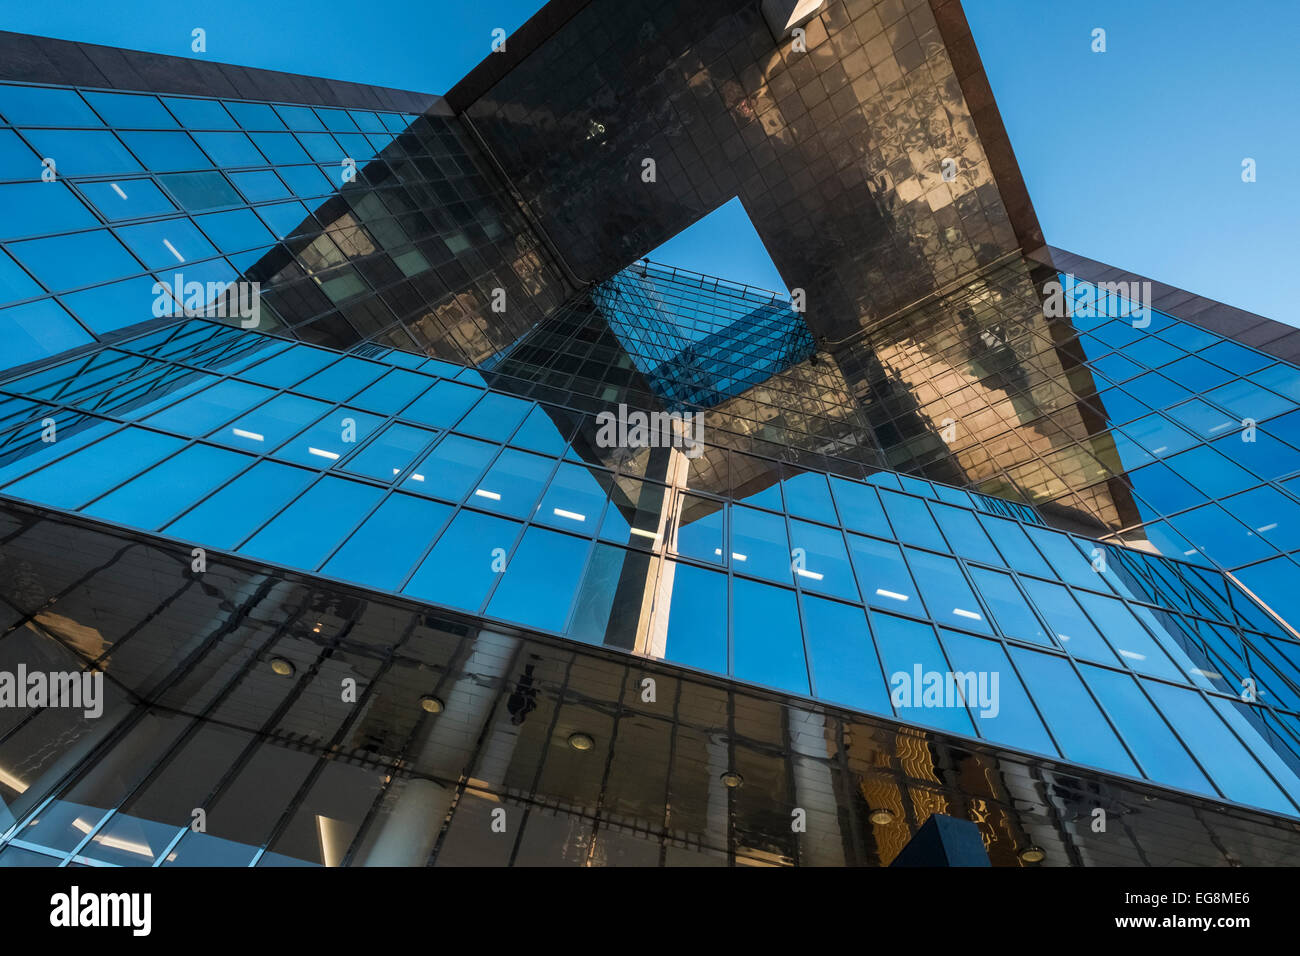 Modern Architecture Uk vertical viewpoint of modern architecture, 1 london bridge